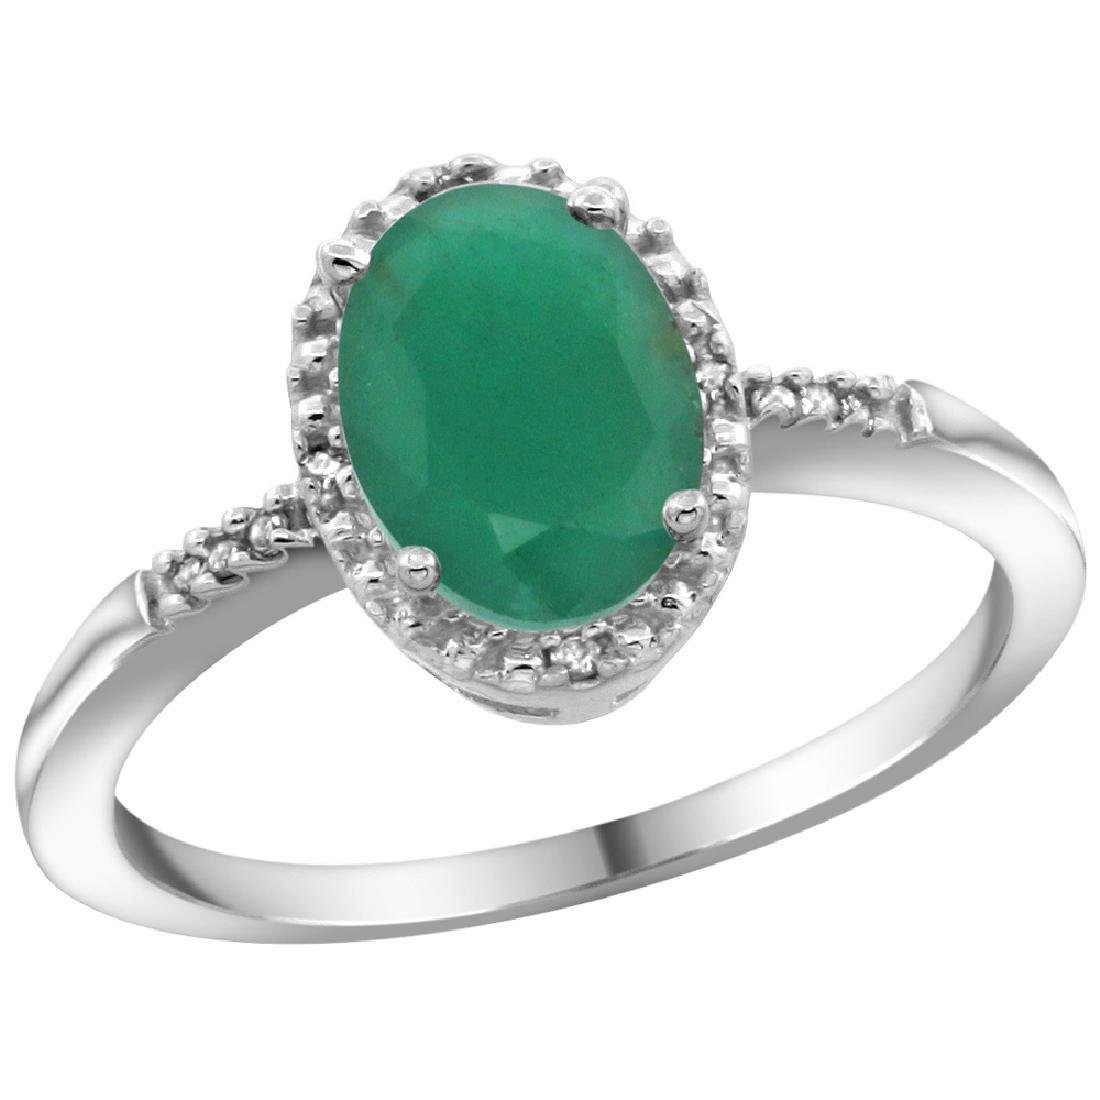 Natural 1.5 ctw Emerald & Diamond Engagement Ring 14K